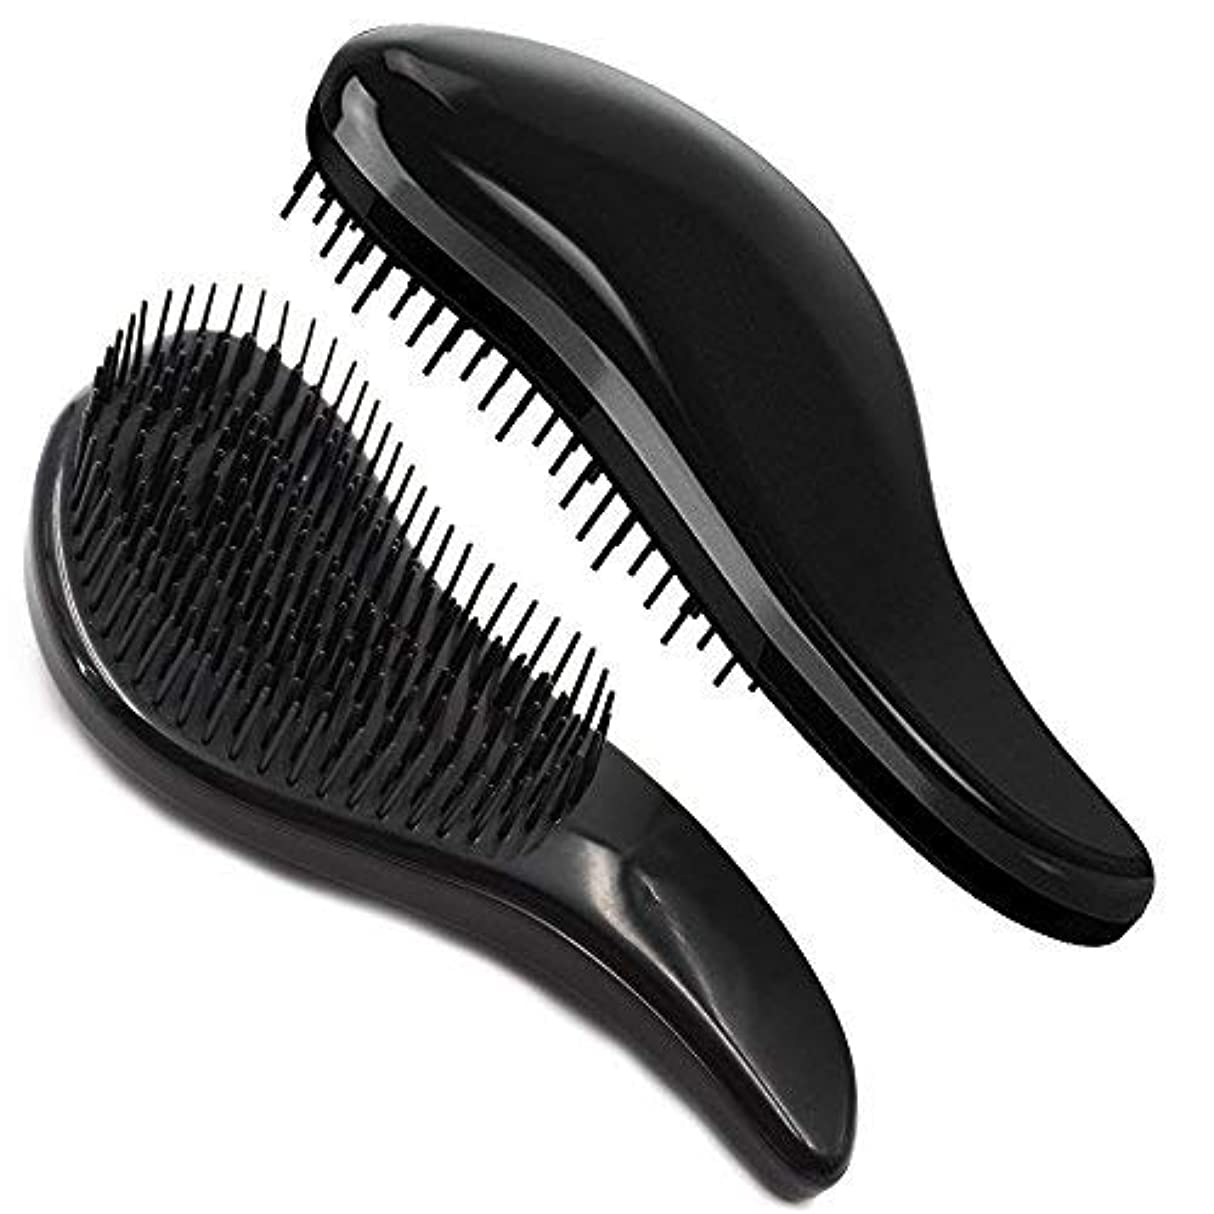 Brush Master Detangler Hair Comb Hair Brush for Wet Hair Curly Hair Straight Hair for Women Men Kids Black [並行輸入品]